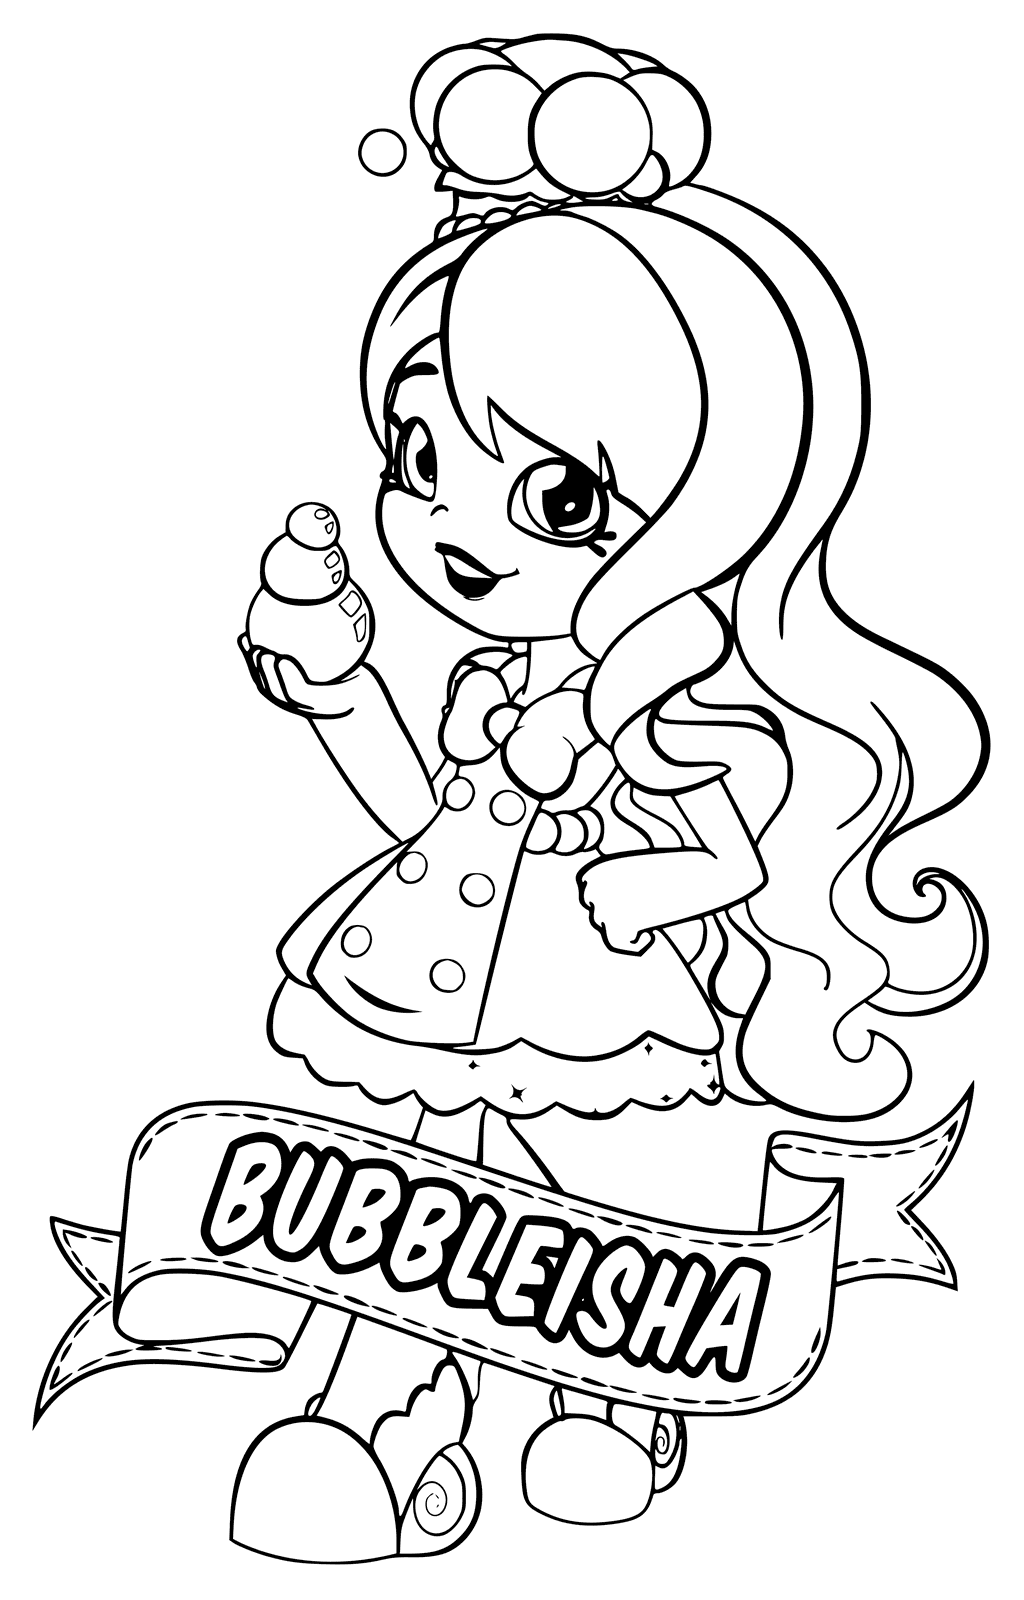 Coloring Rocks Shopkin Coloring Pages Shopkins Colouring Pages Cute Coloring Pages